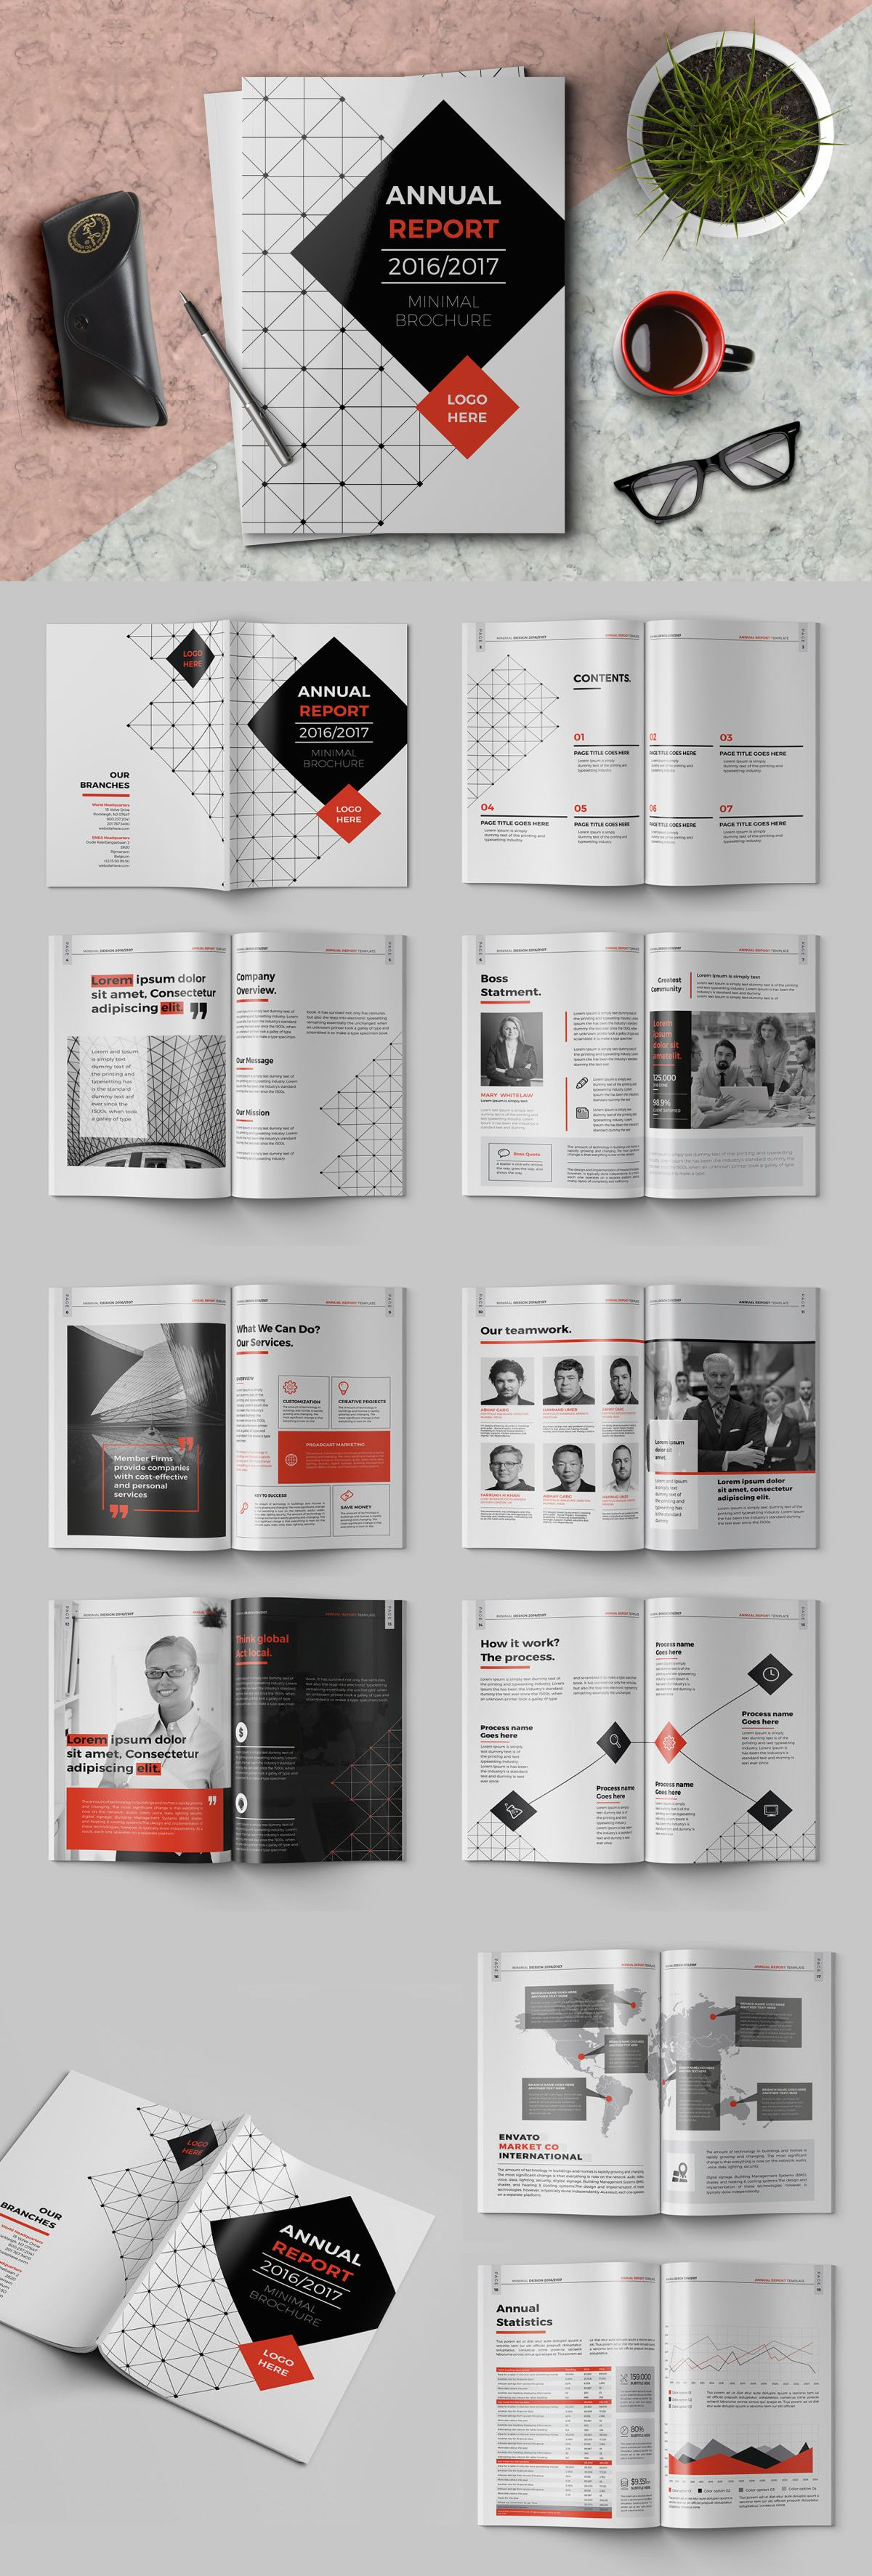 Elegant Annual Report Brochure 20 Pages Template InDesign INDD ...